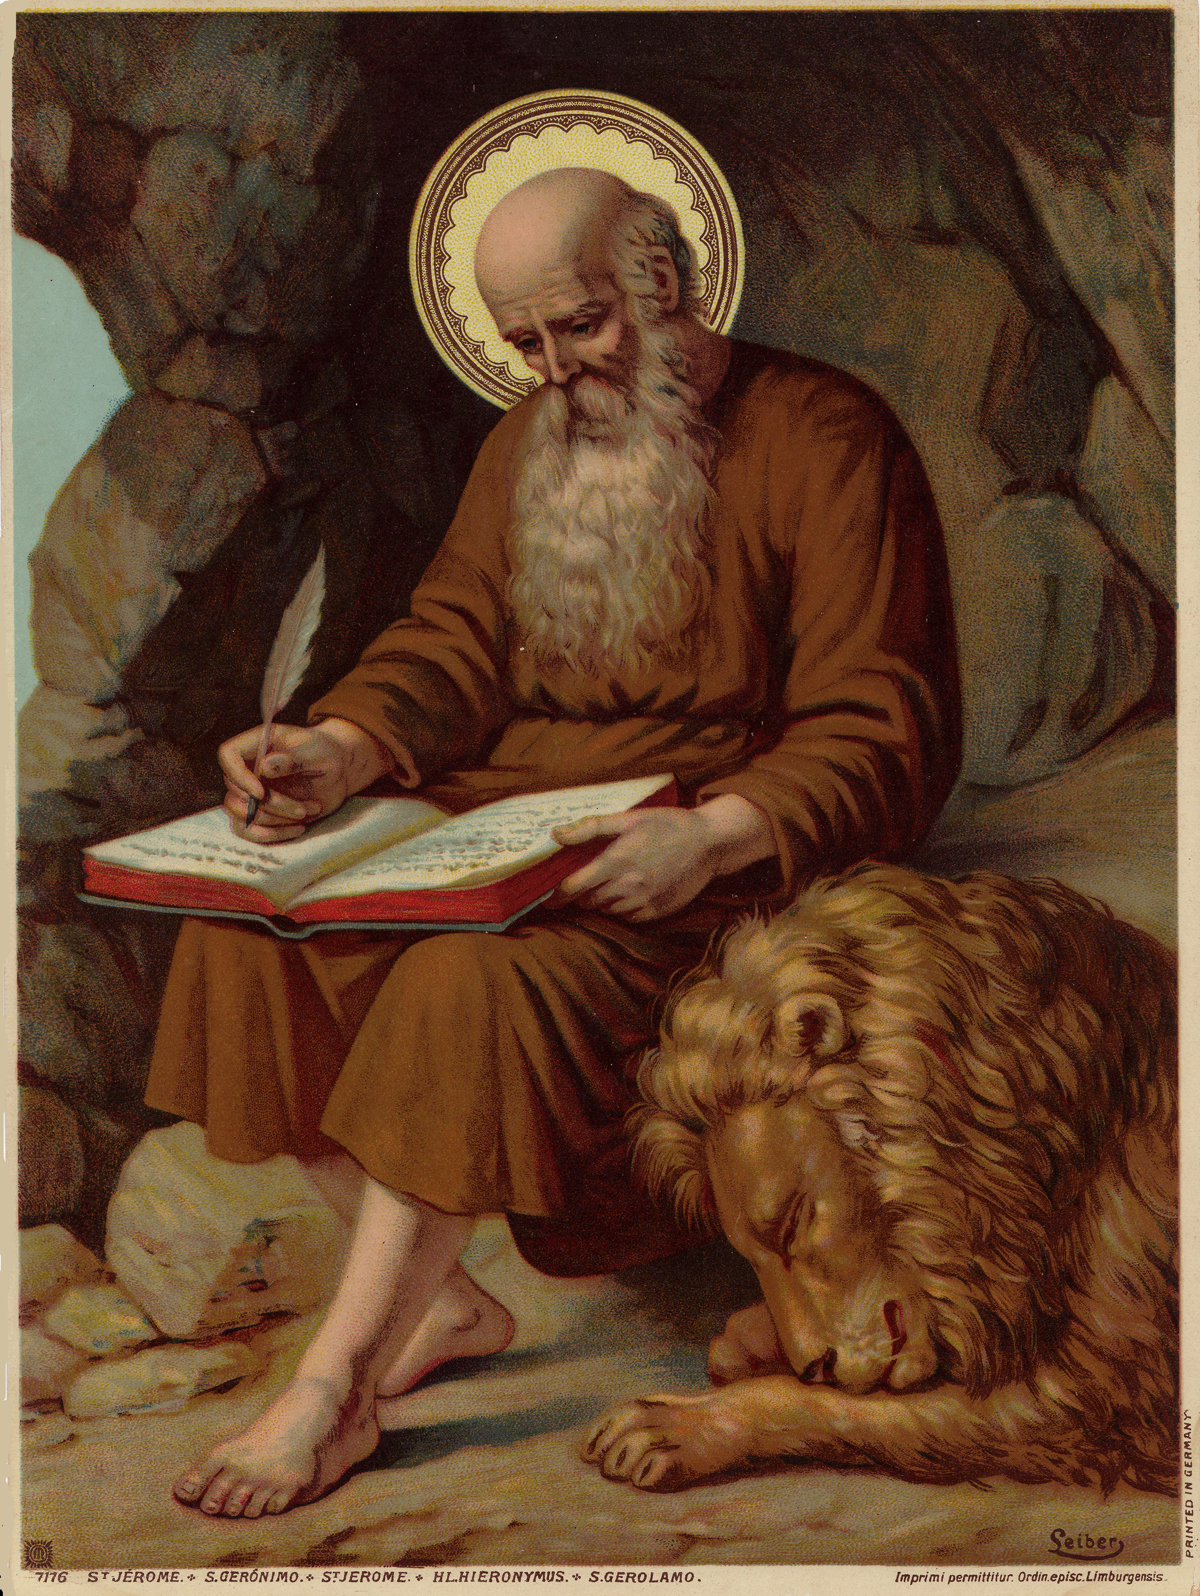 Feast Days in September http://holycardheaven.blogspot.com/2011/09/st-jerome-feast-day-september-30.html